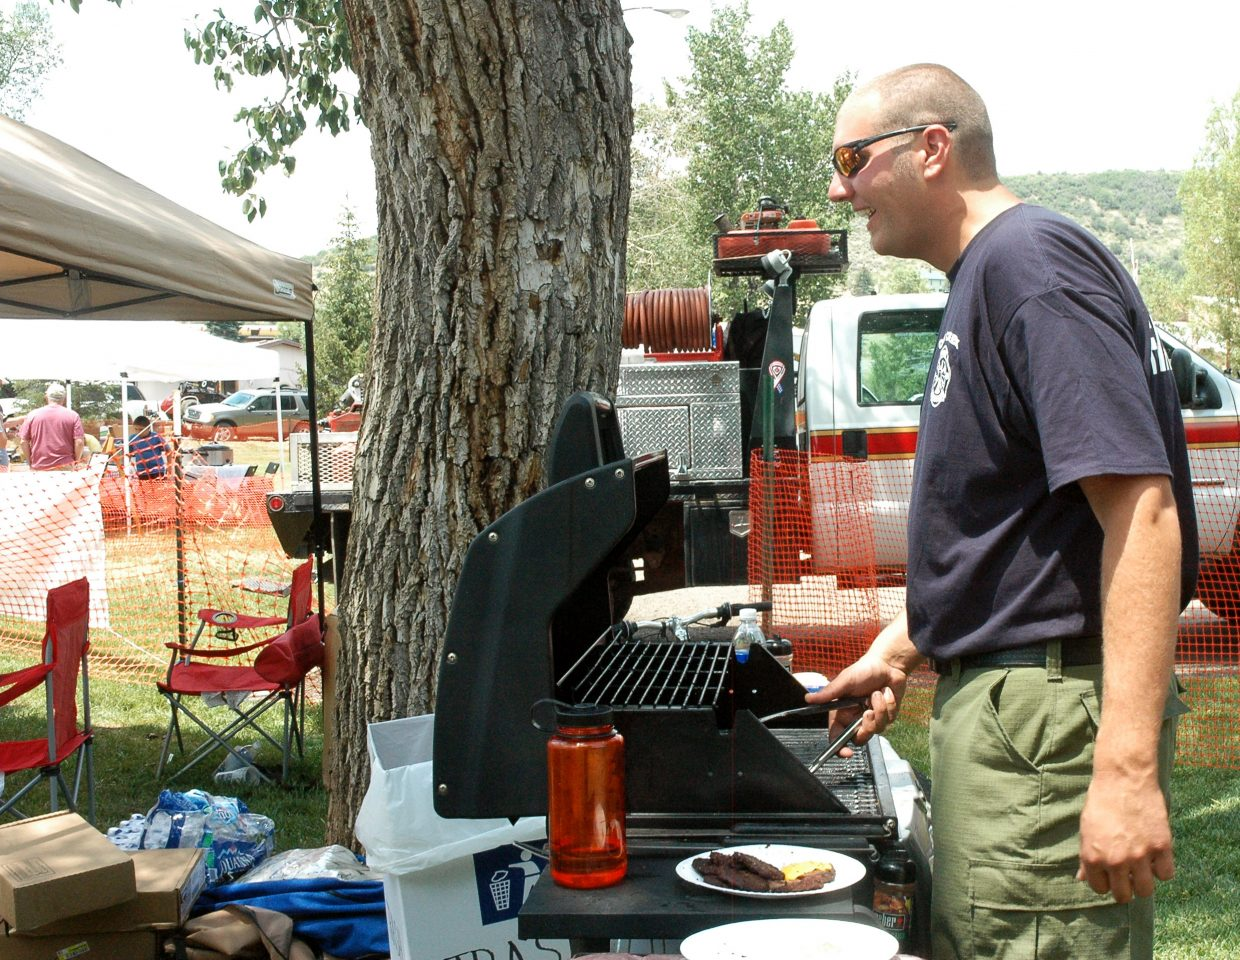 Jeff Buffetti of Oak Creek Fire Rescue works the grill at the fire department's tent during the annual Taste of South Routt festival in Oak Creek on Saturday.